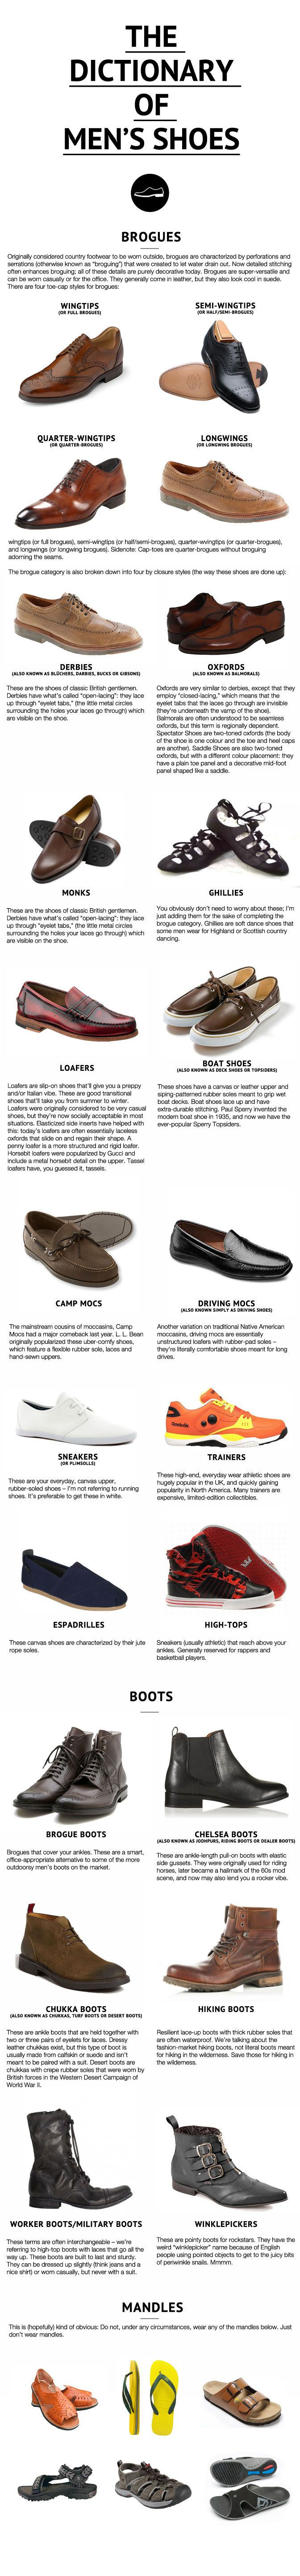 The Dictionary of Men's Shoes: How Shoes Can Make You More Attractive As A Man I secretly wish I can own these men's boots here, love these styles!